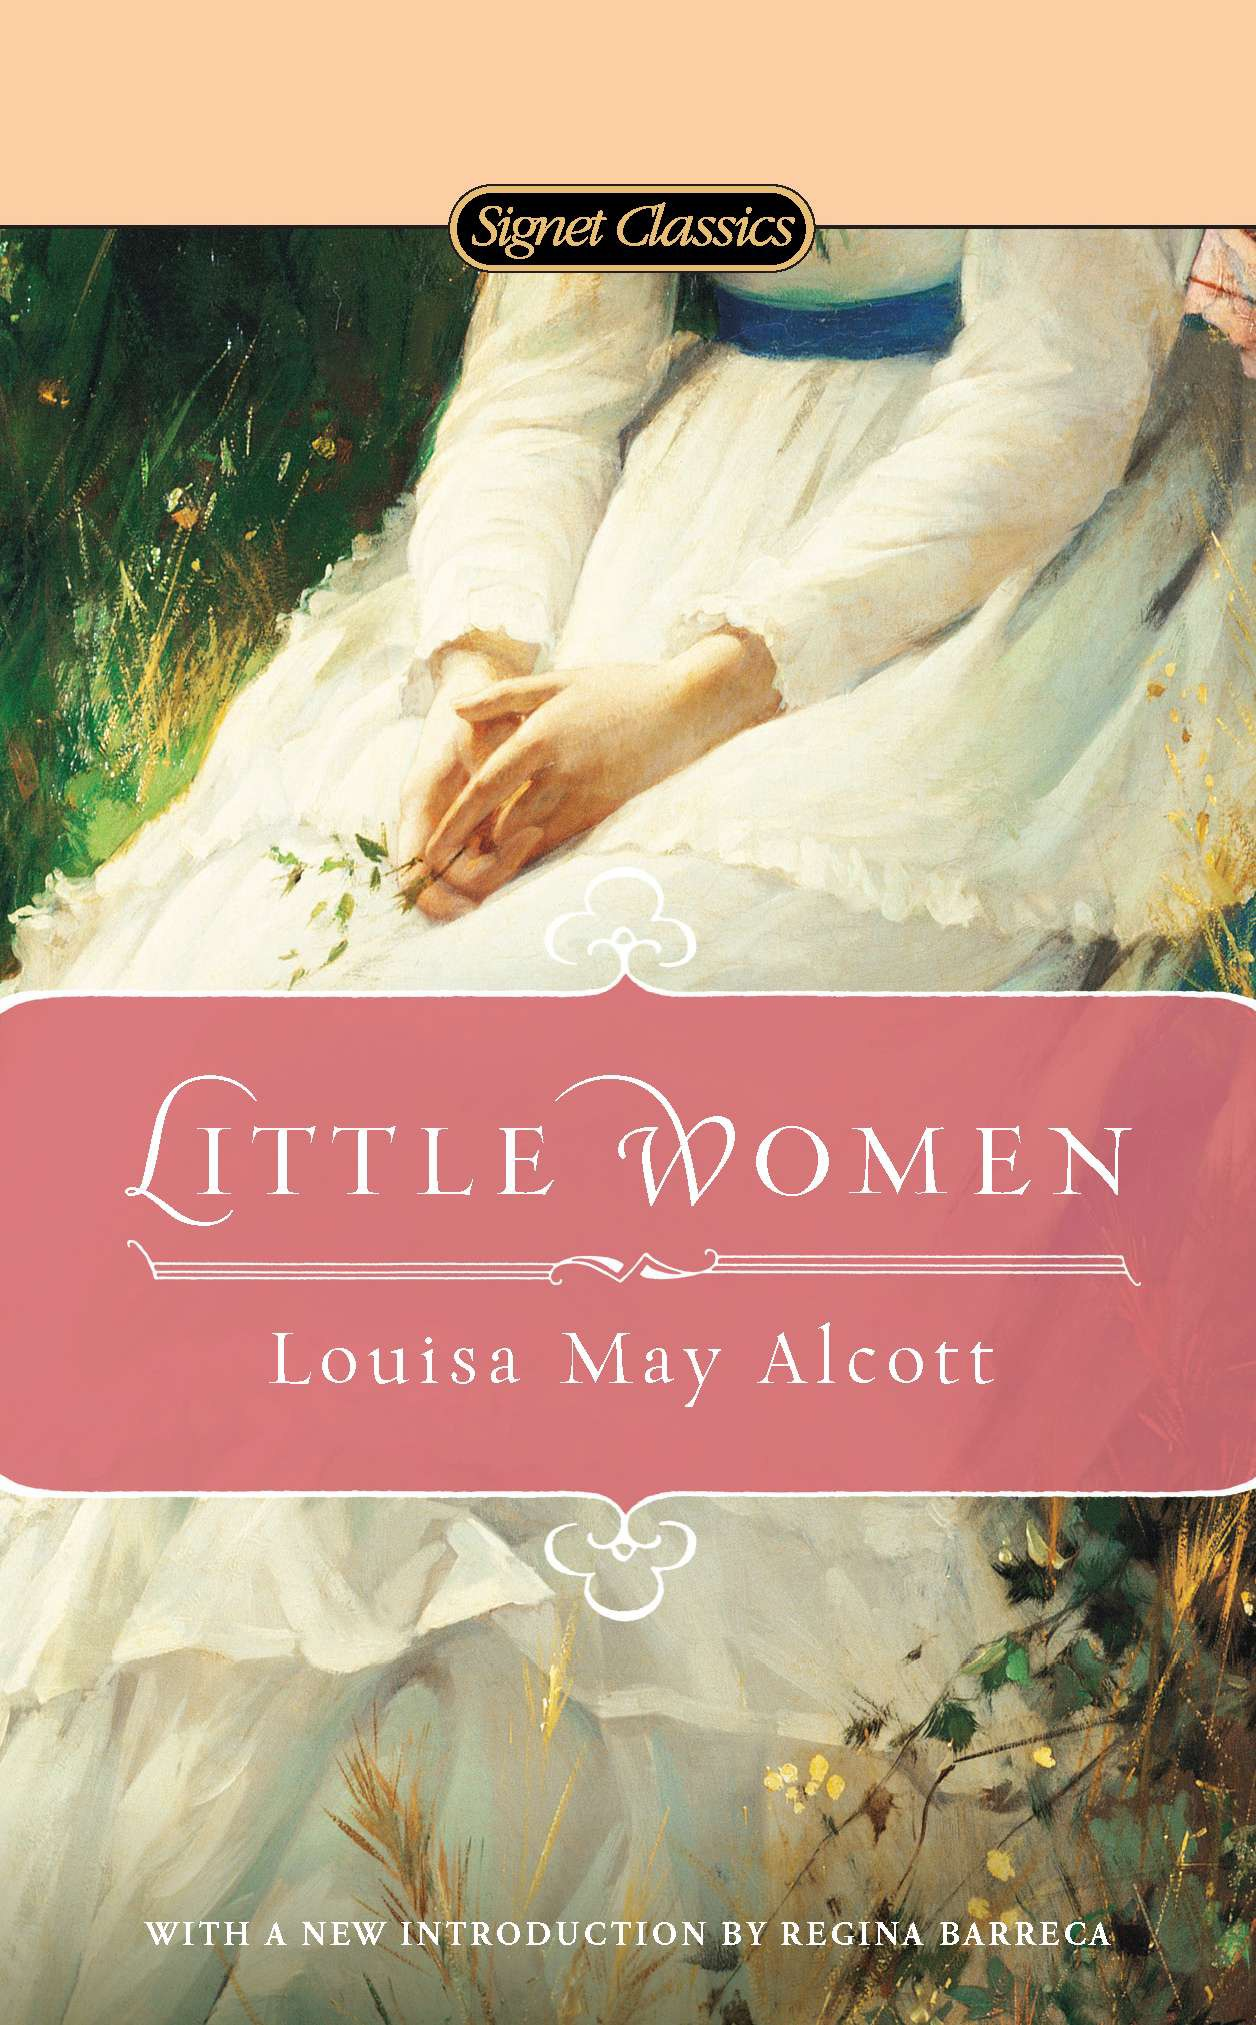 Little Women-Louisa May Alcott